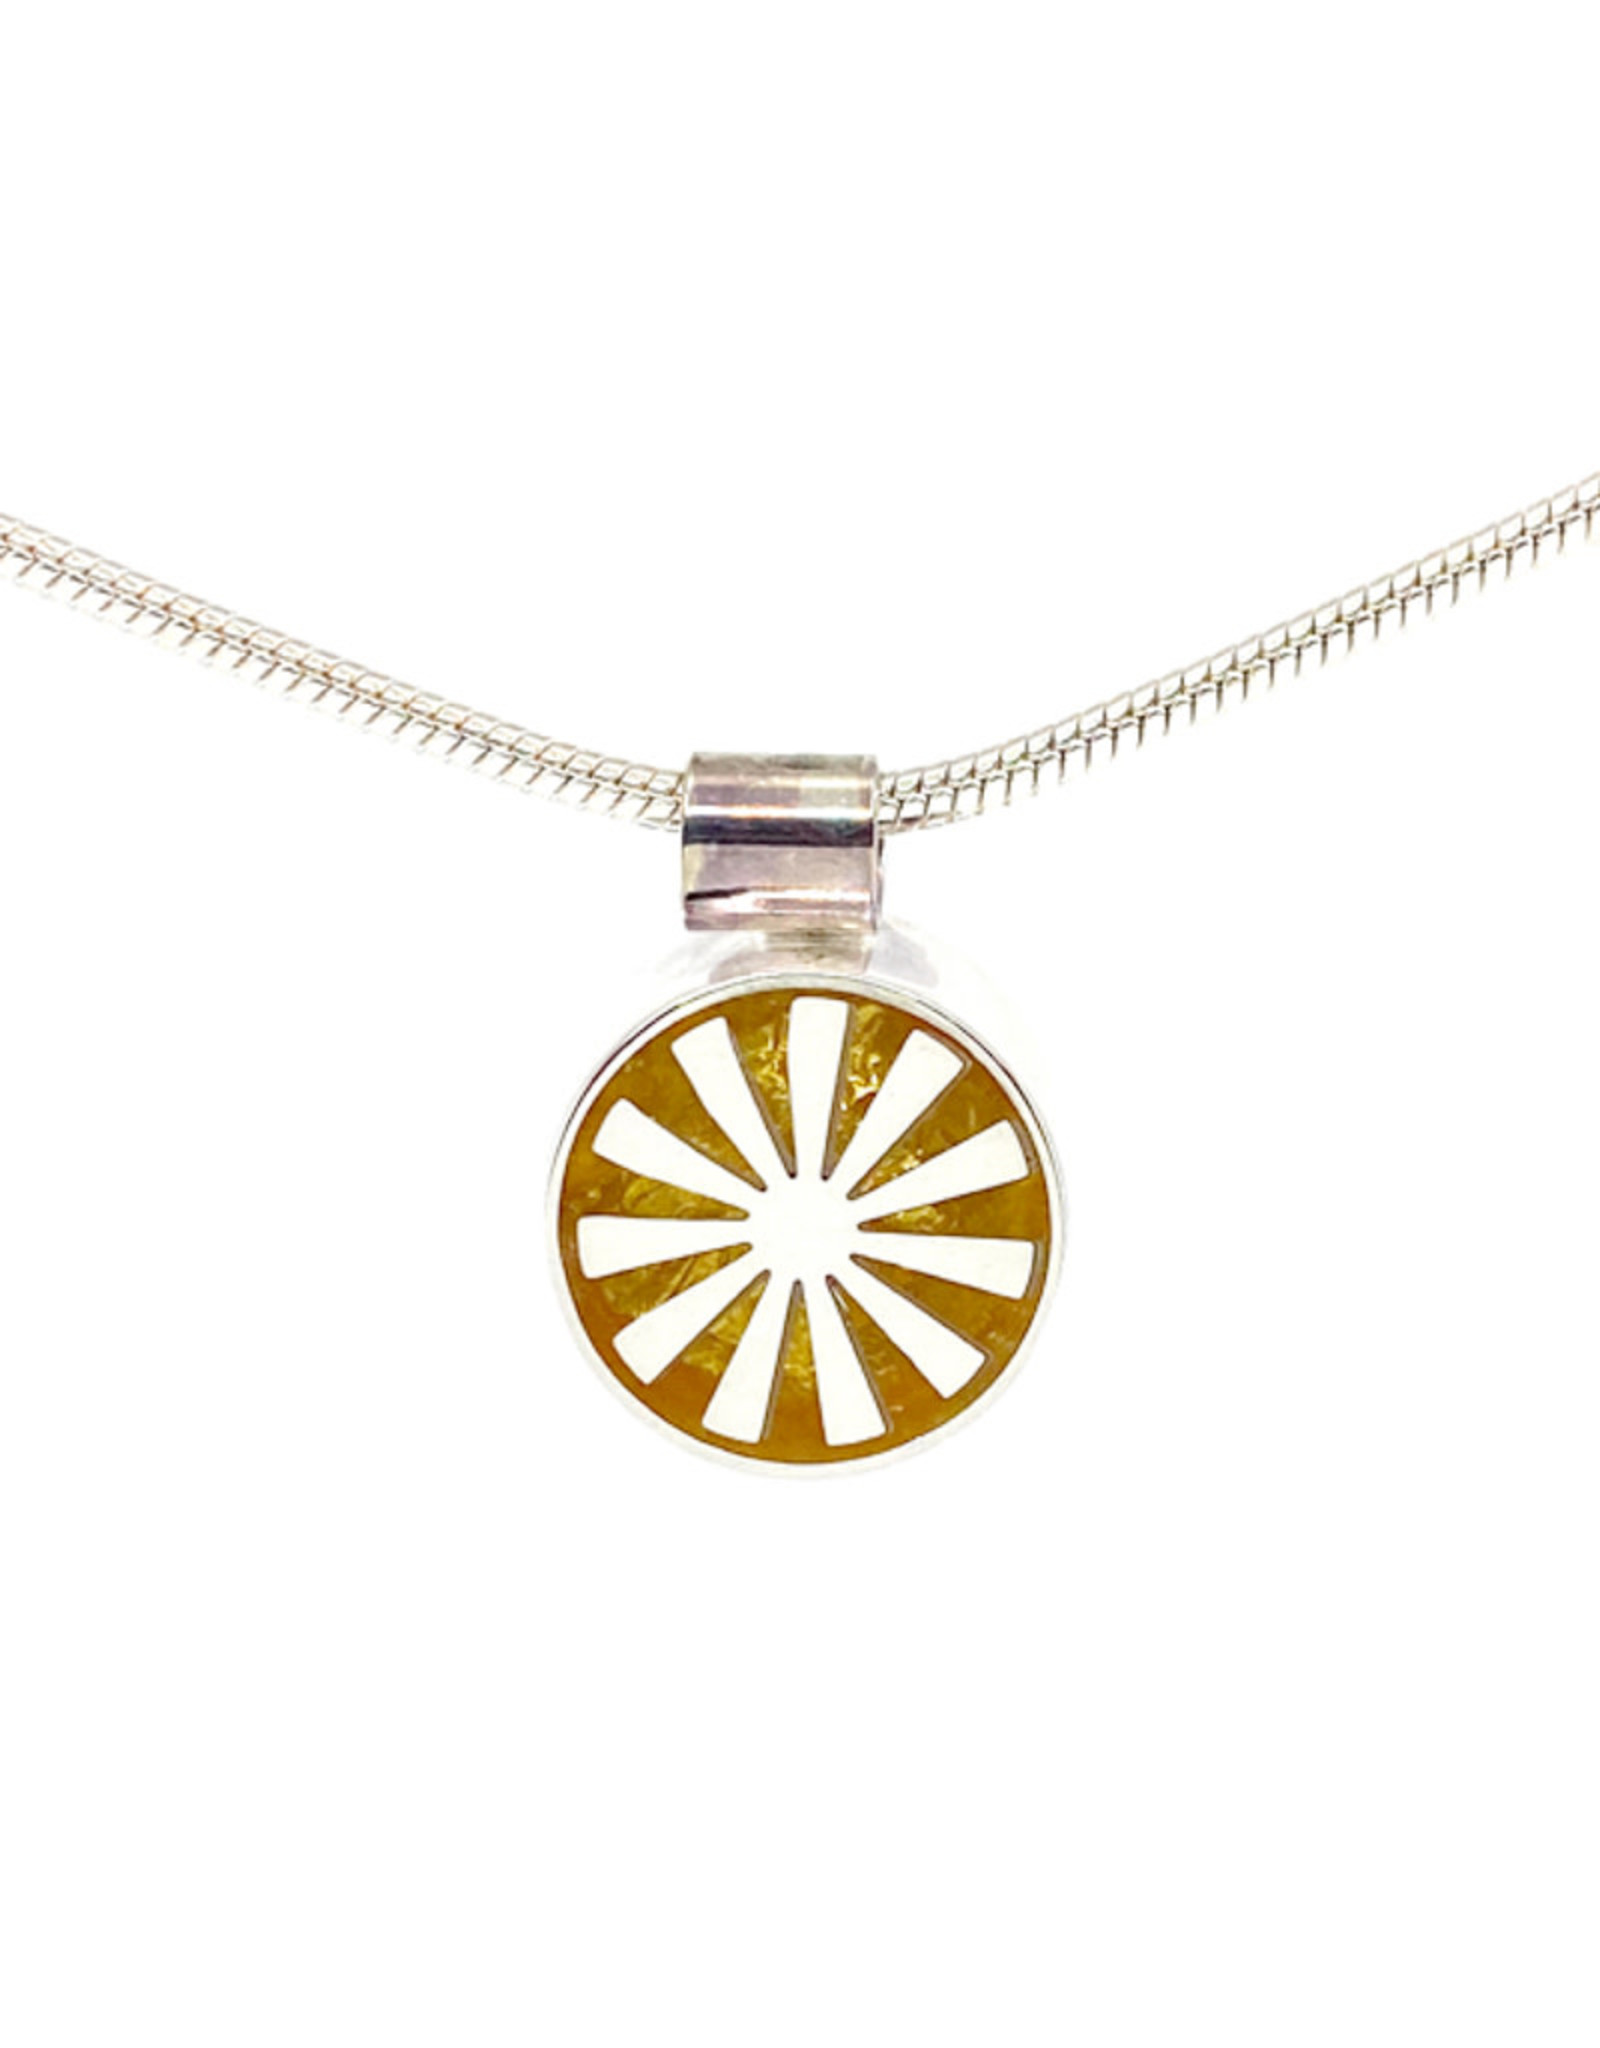 VICTORIA VARGA MINI SPOKE NECKLACE